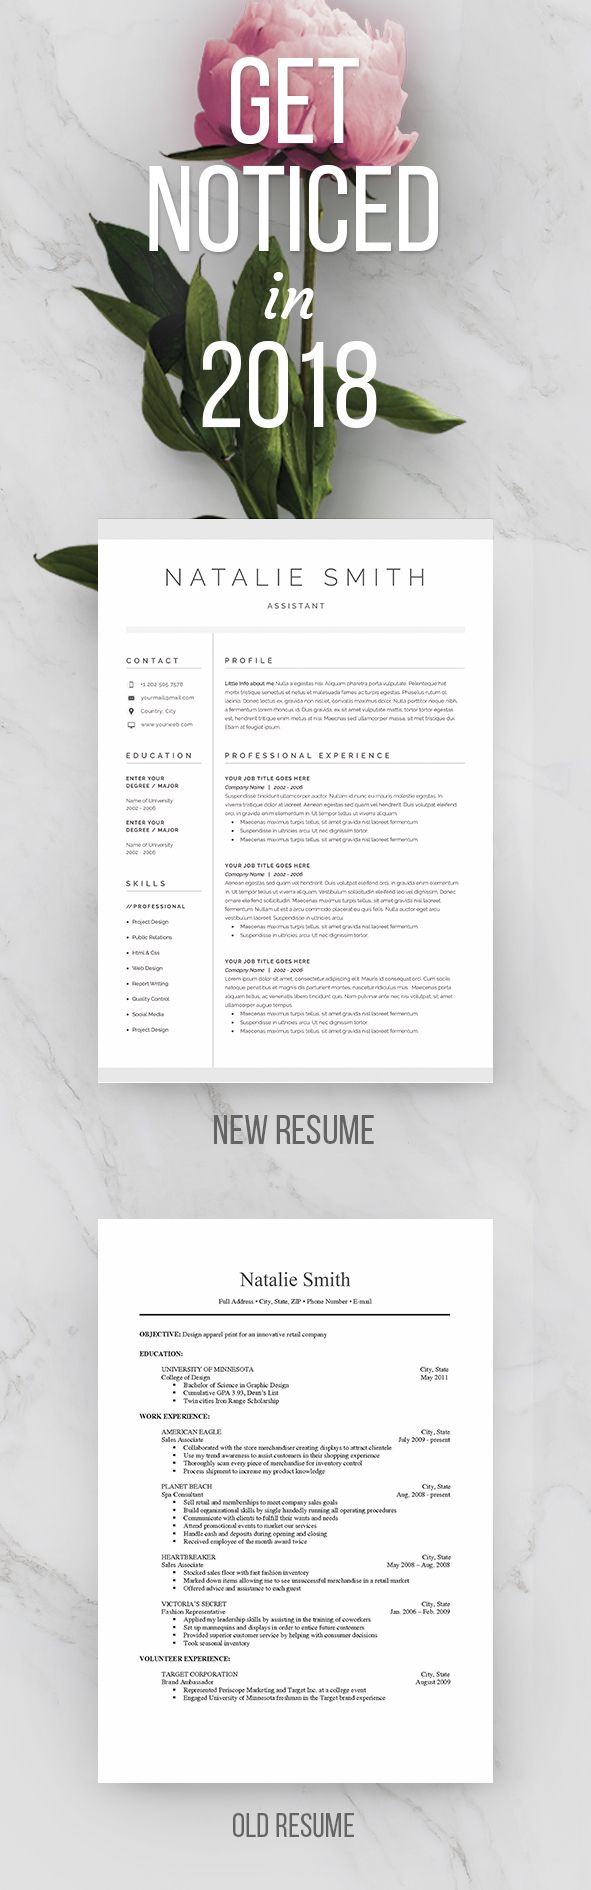 Get Noticed in 2018! Land your dream job! Resume cover